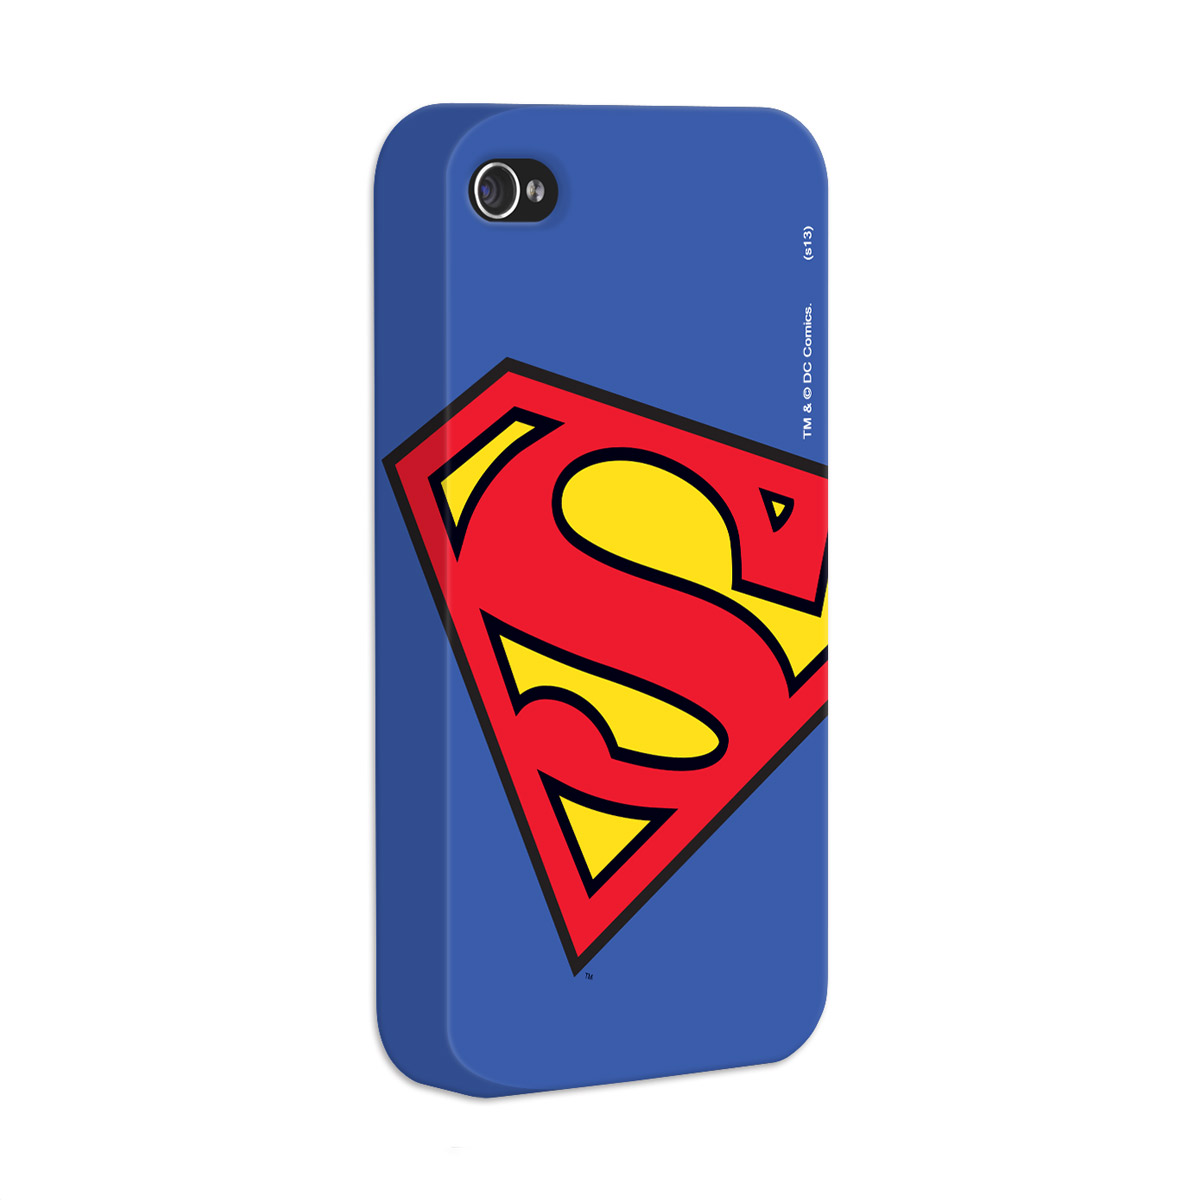 Capa de iPhone 4/4S Superman - Logo Superman Oficial